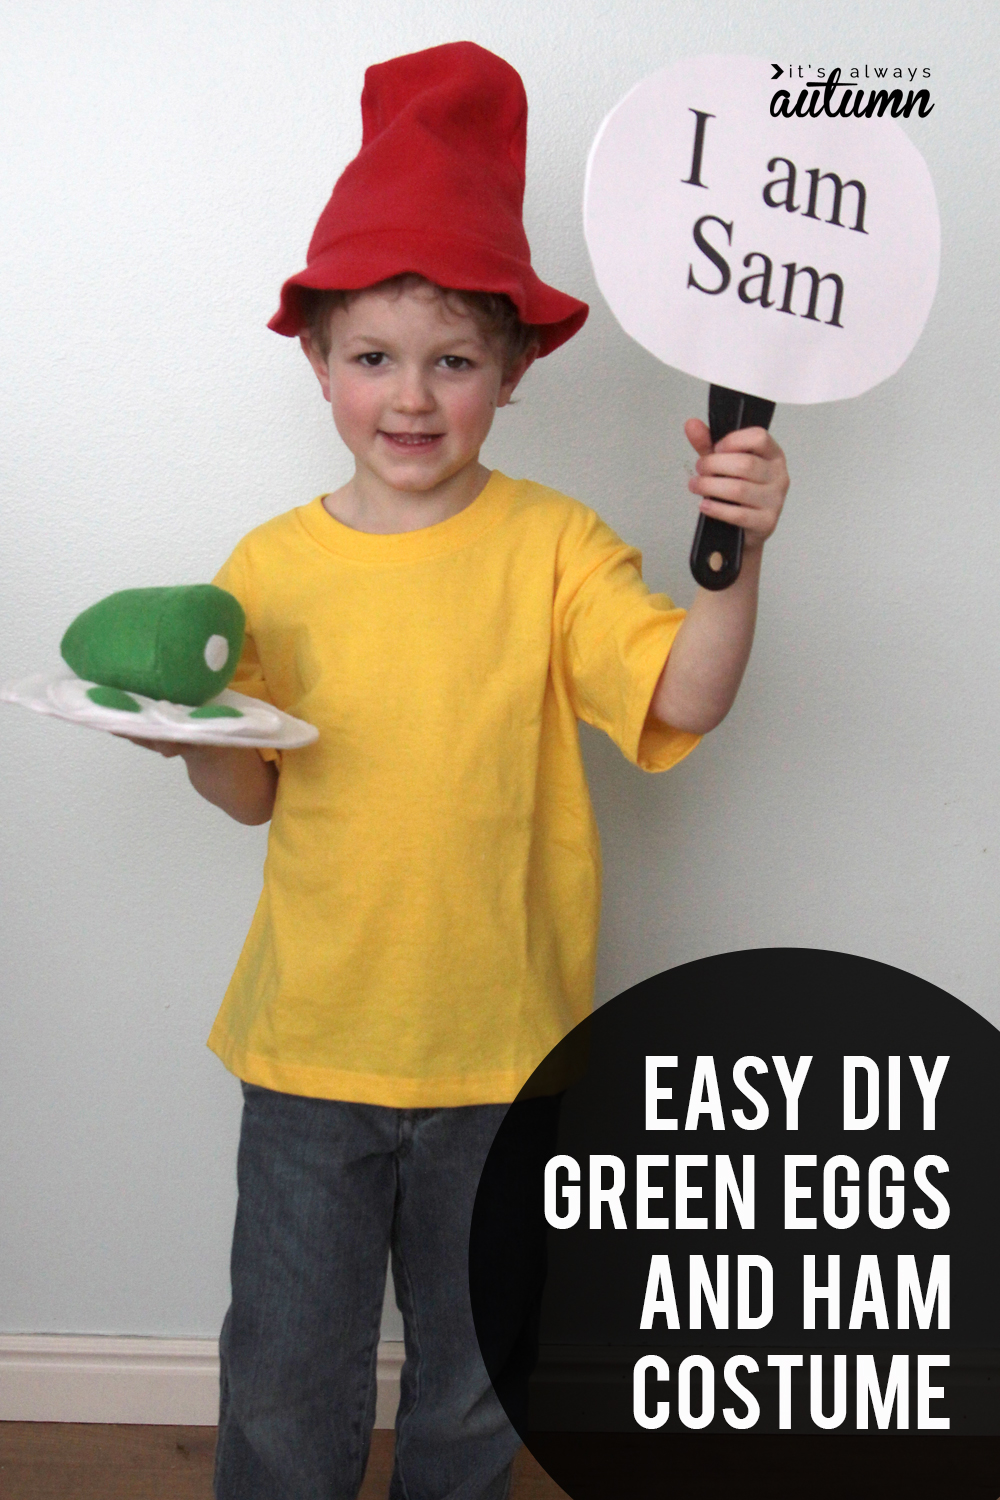 Easy DIY Green Eggs and Ham costume for Dr. Suess day!